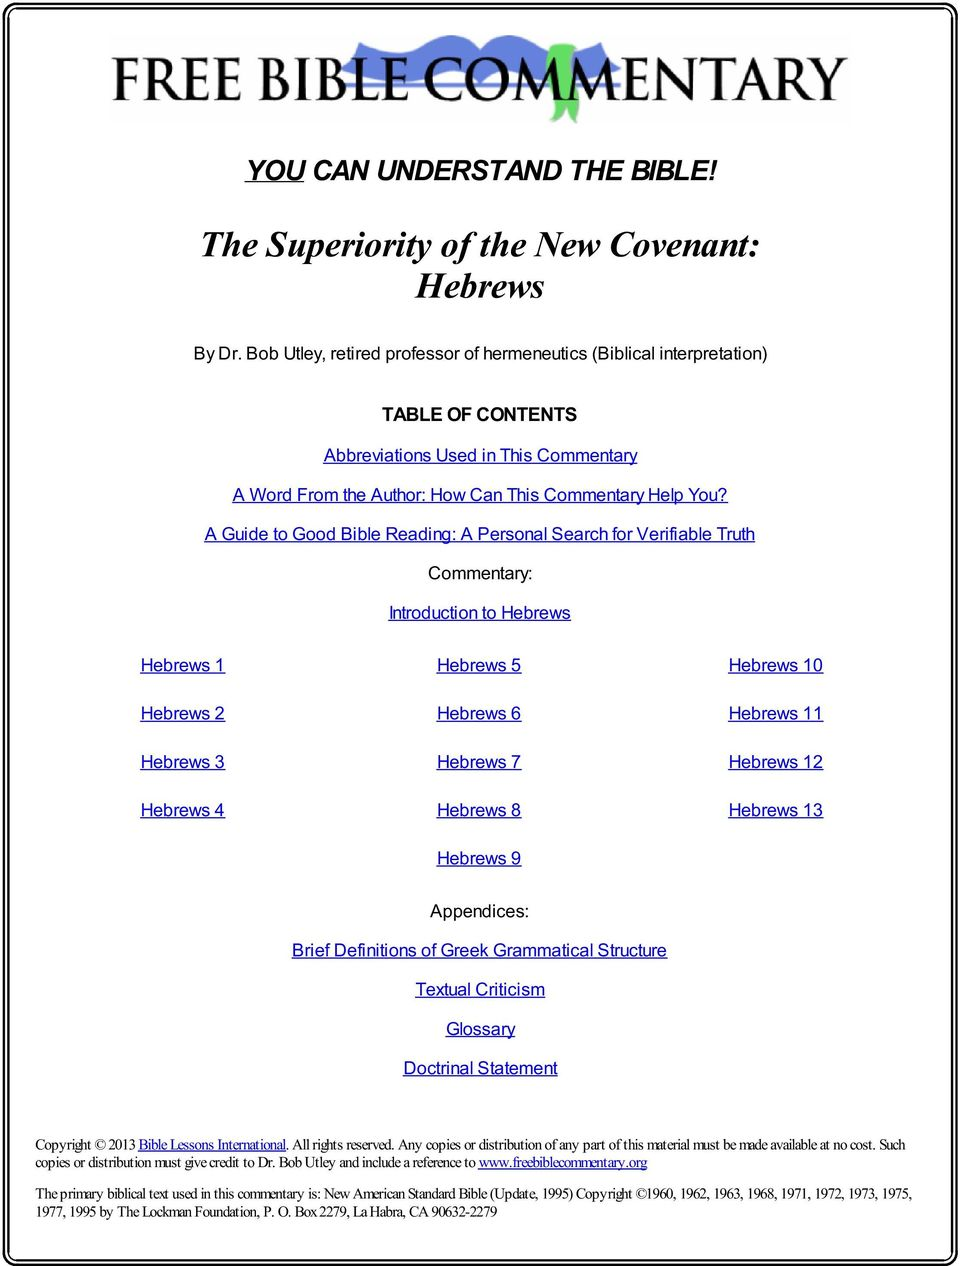 The Superiority of the New Covenant: Hebrews - PDF